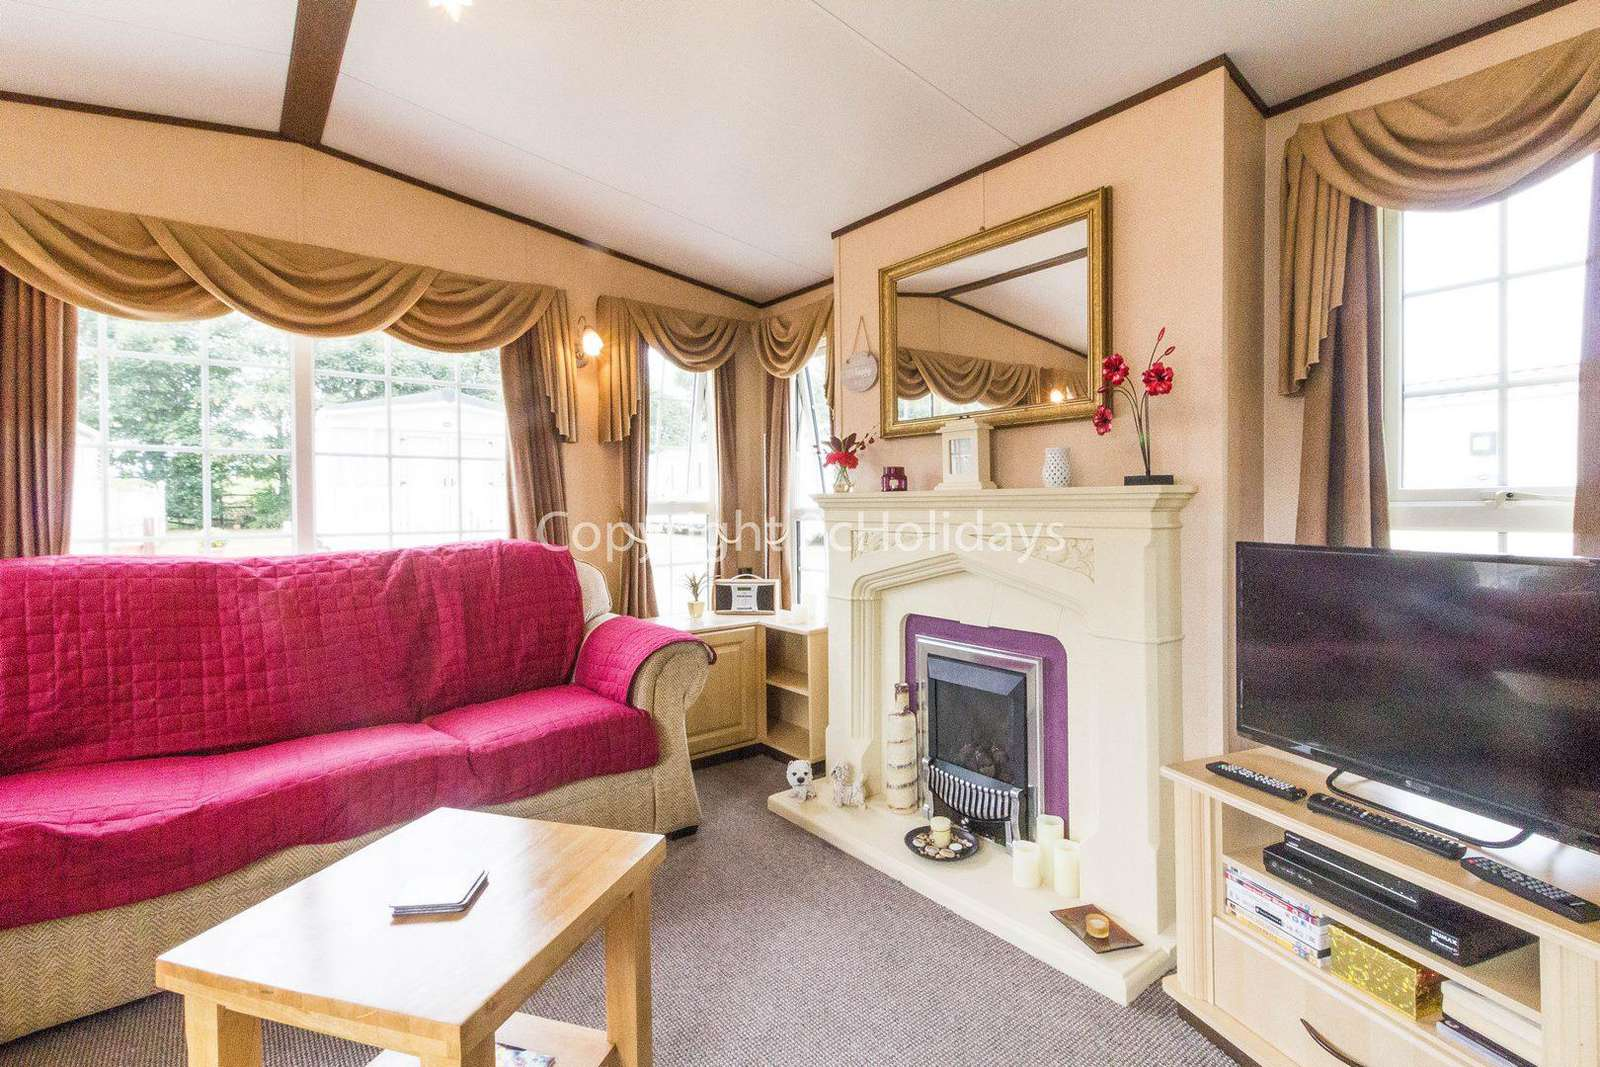 Stunning lounge in this stunning caravan for hire.